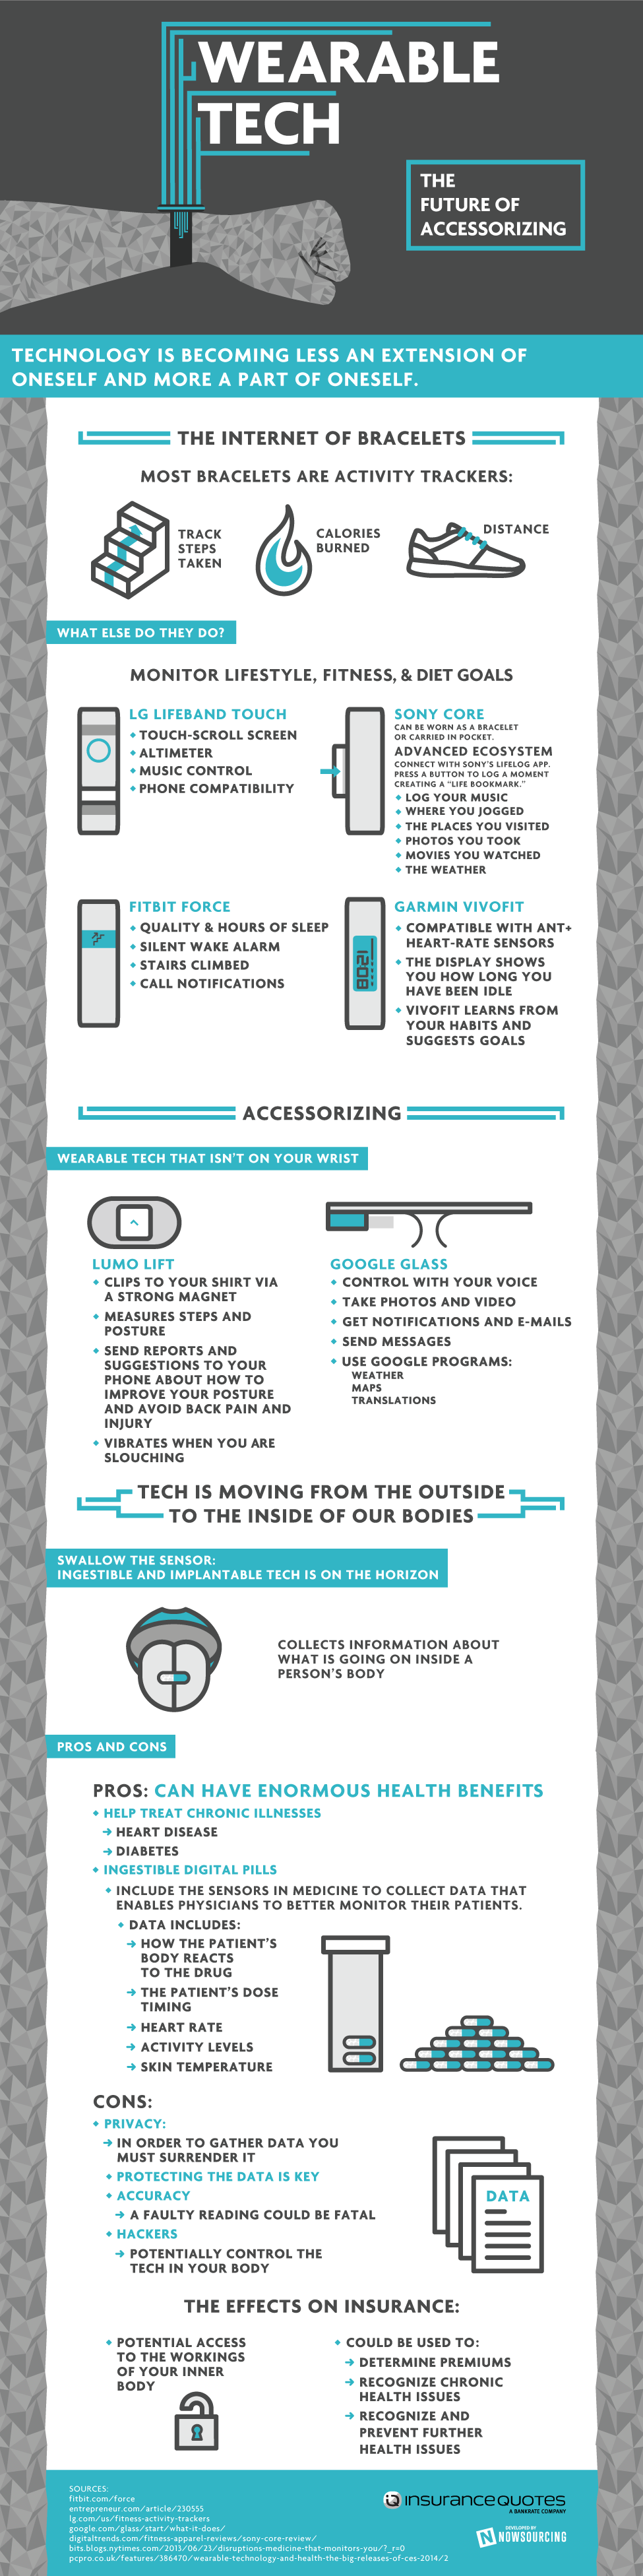 The Future of Wearable Health Accessories [INFOGRAPHIC]